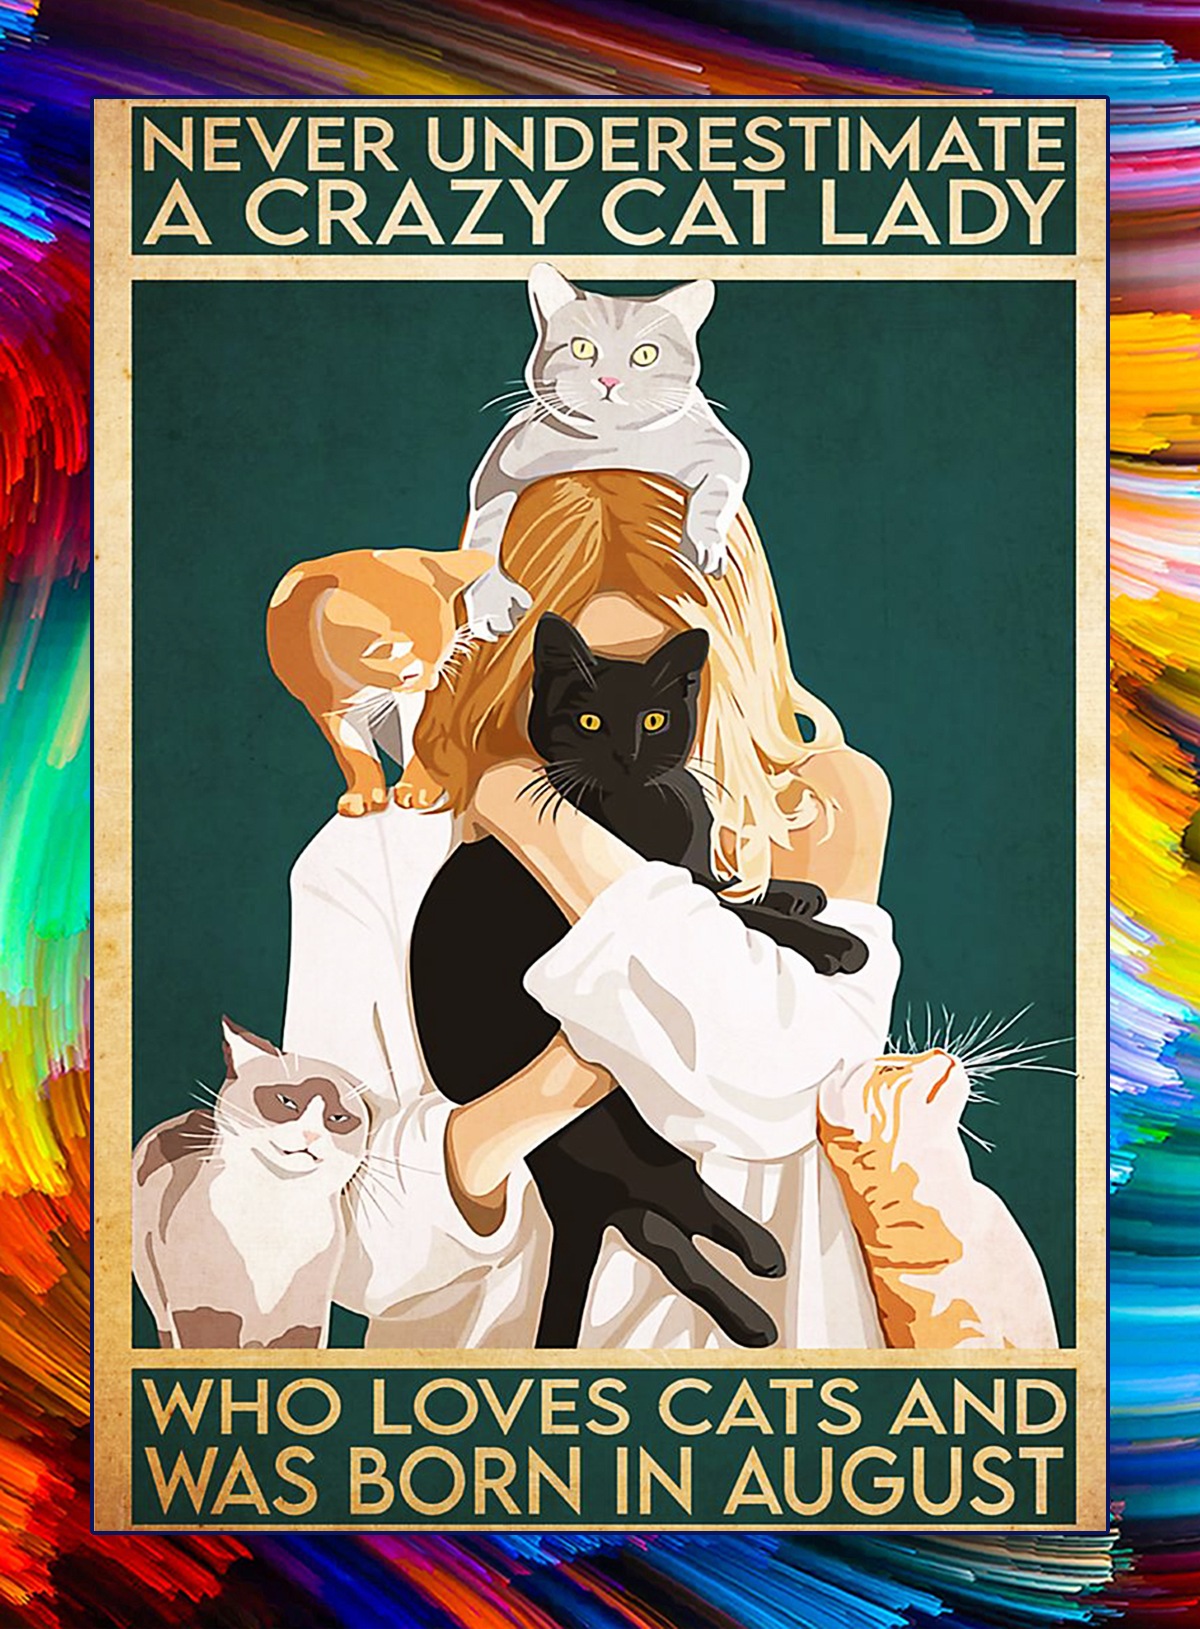 Never underestimate a crazy cat lady who loves cats and was born in august poster - A4